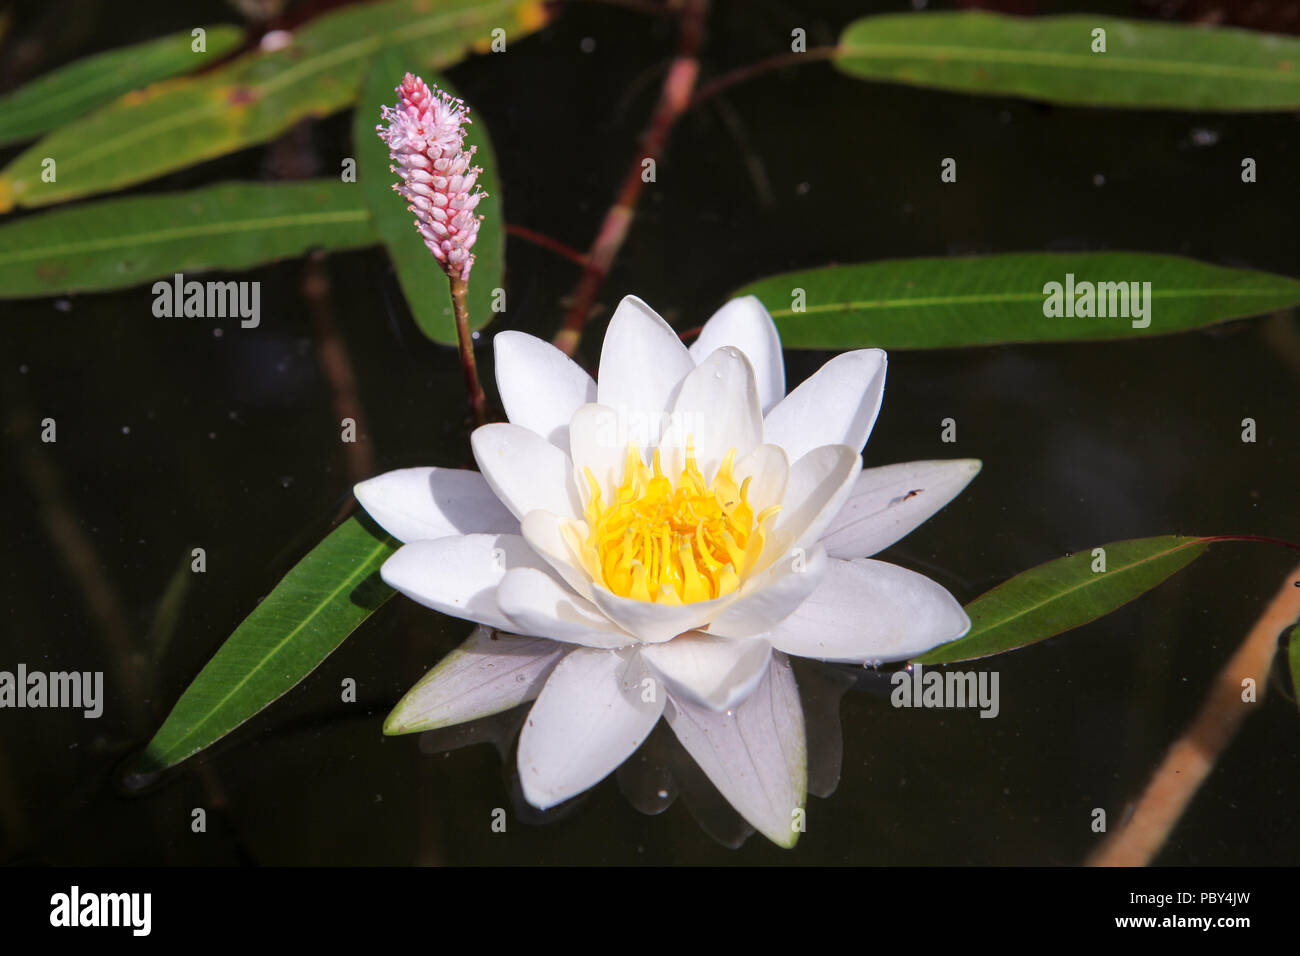 Beautiful Lotus Flower White Nymphaea Alba Or Water Lily Among